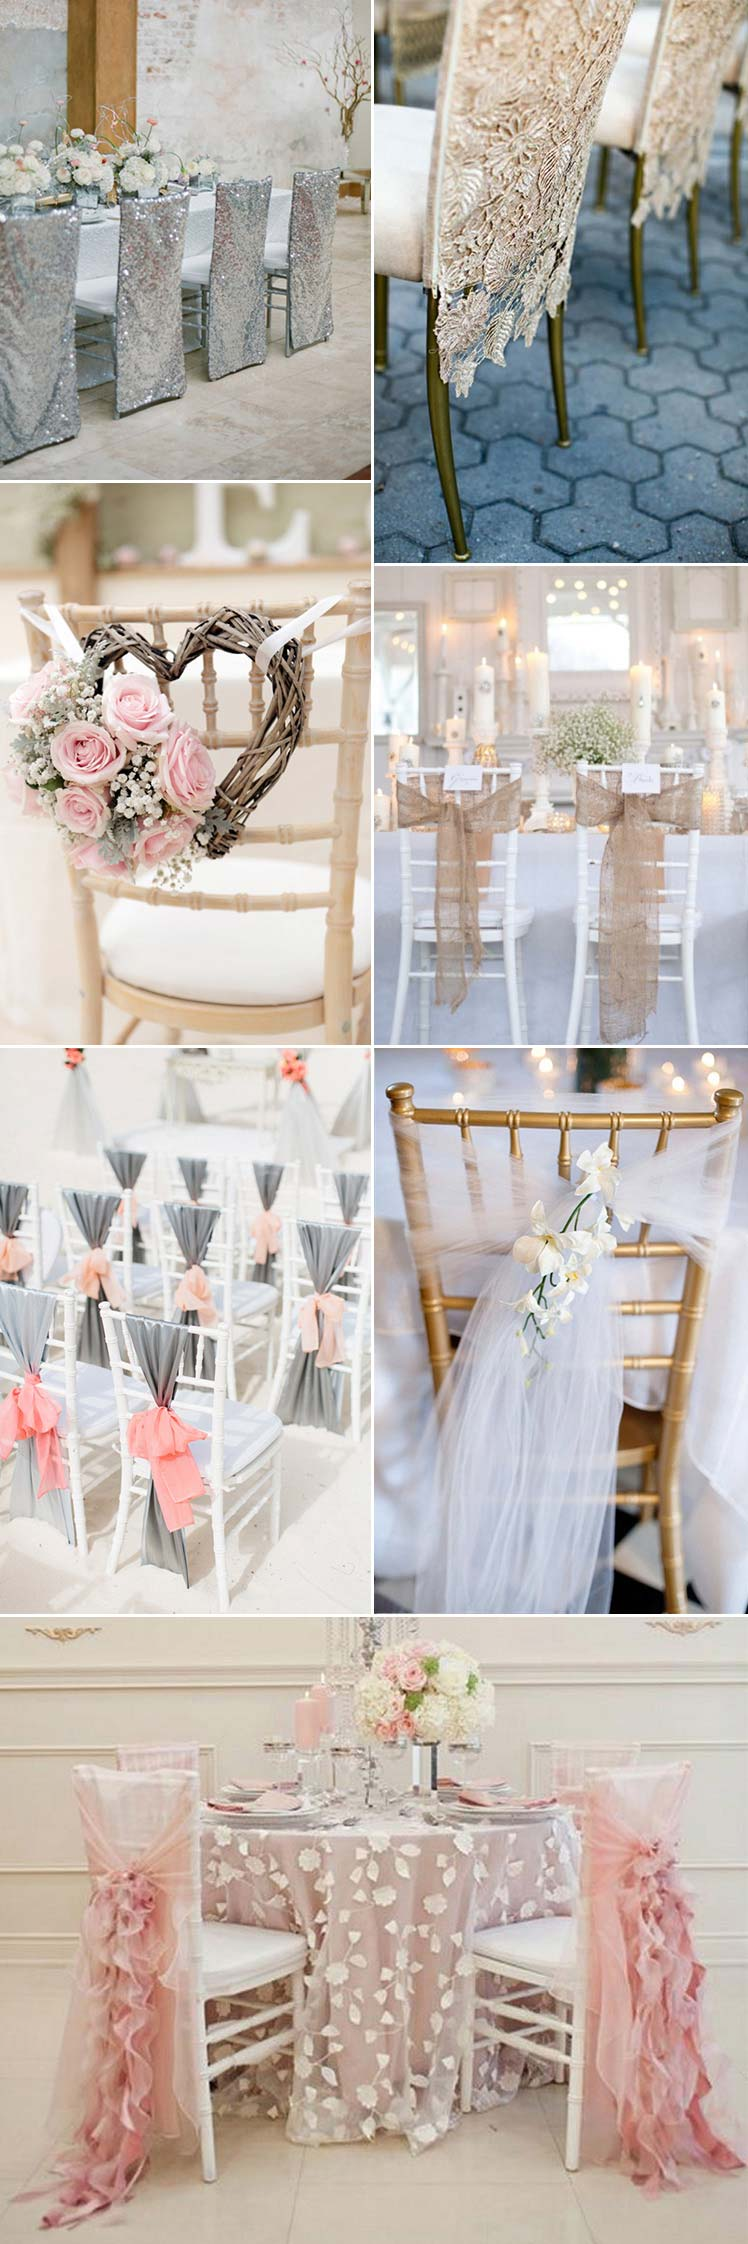 Wedding Chair decoration 1-7